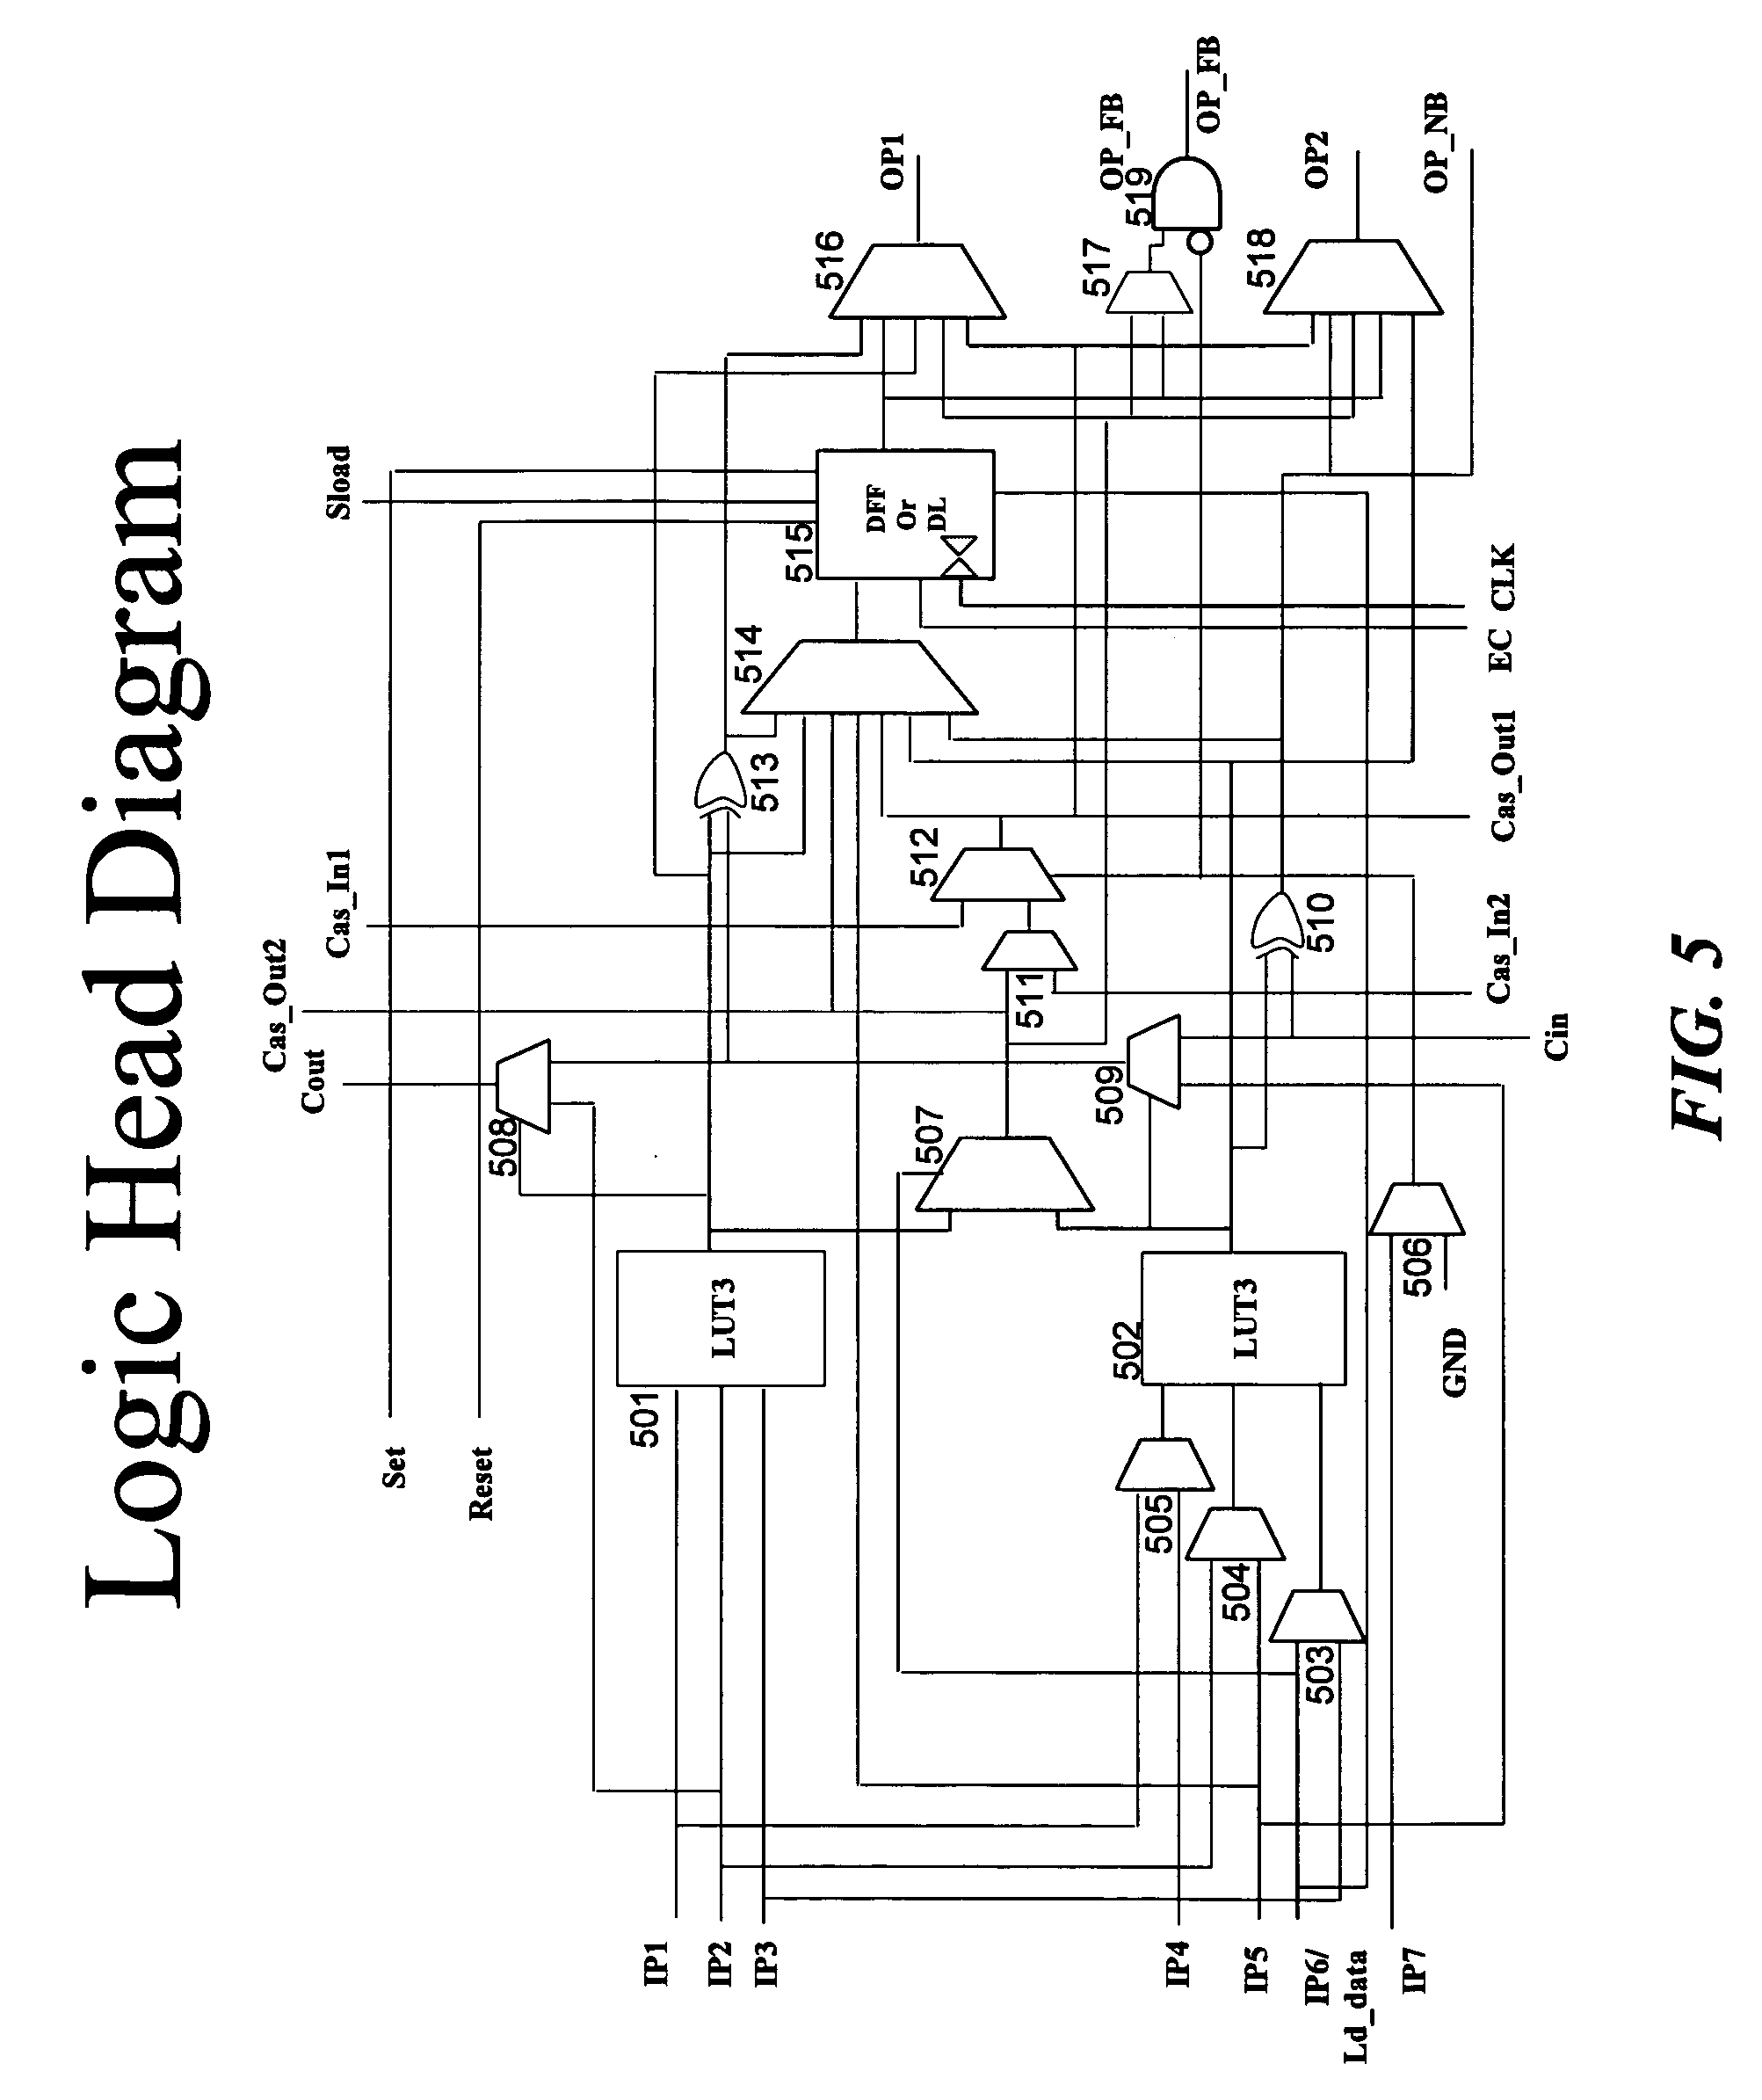 4 Bit Full Adder Subtractor Wiring Diagram And Fuse Box